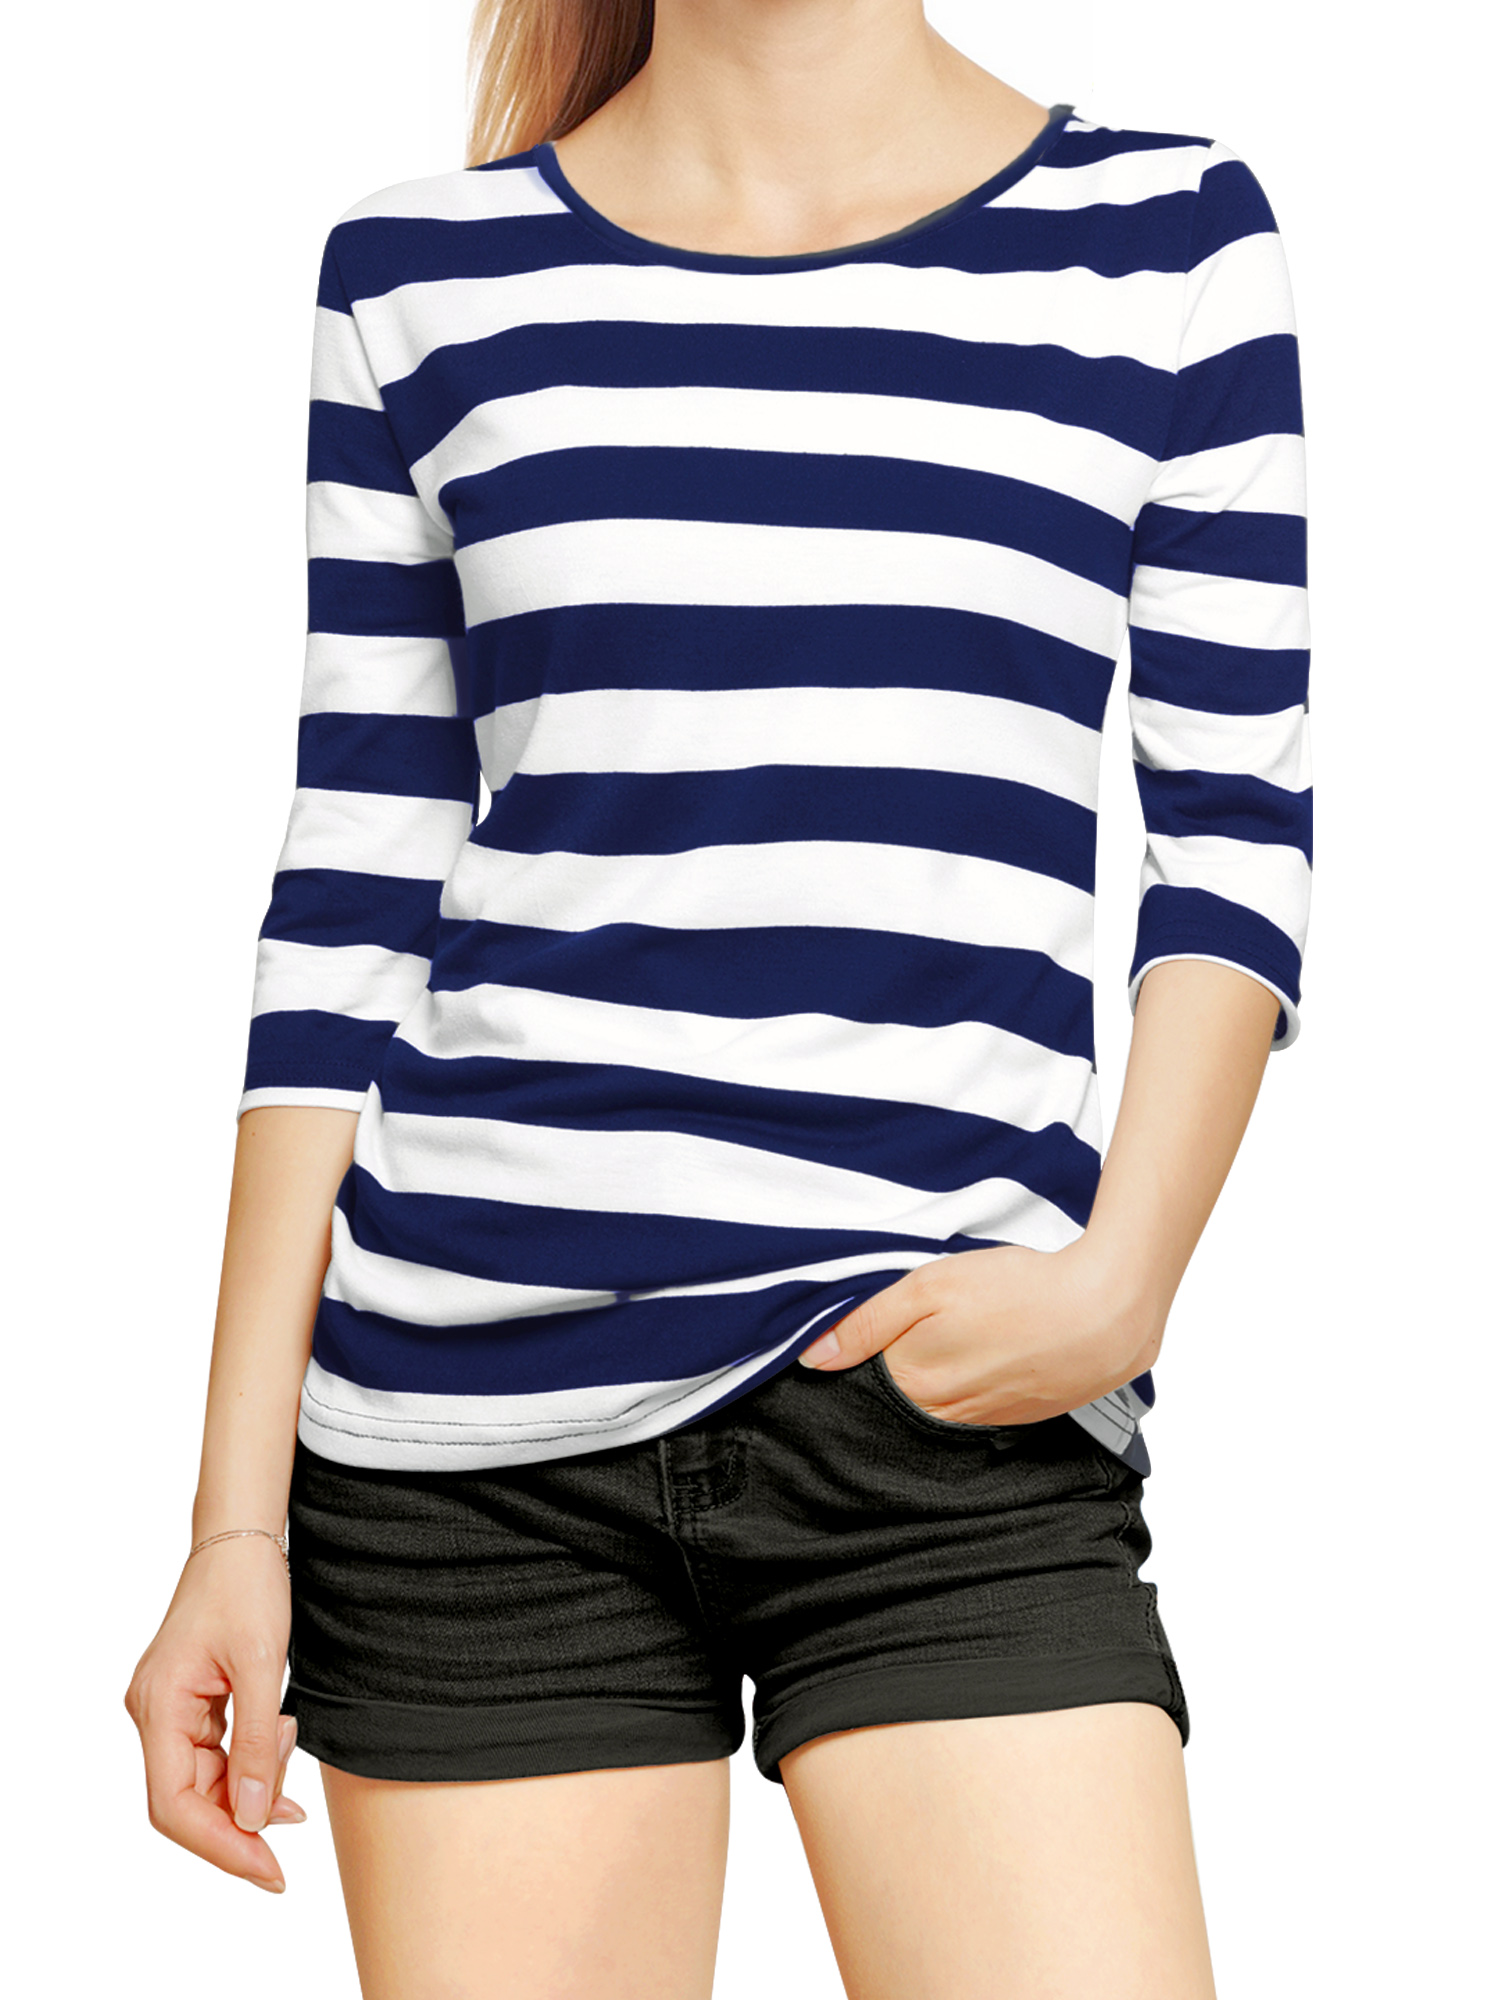 Allegra K Women Elbow Sleeves Contrast Color Stripes Tee White Dark Blue S